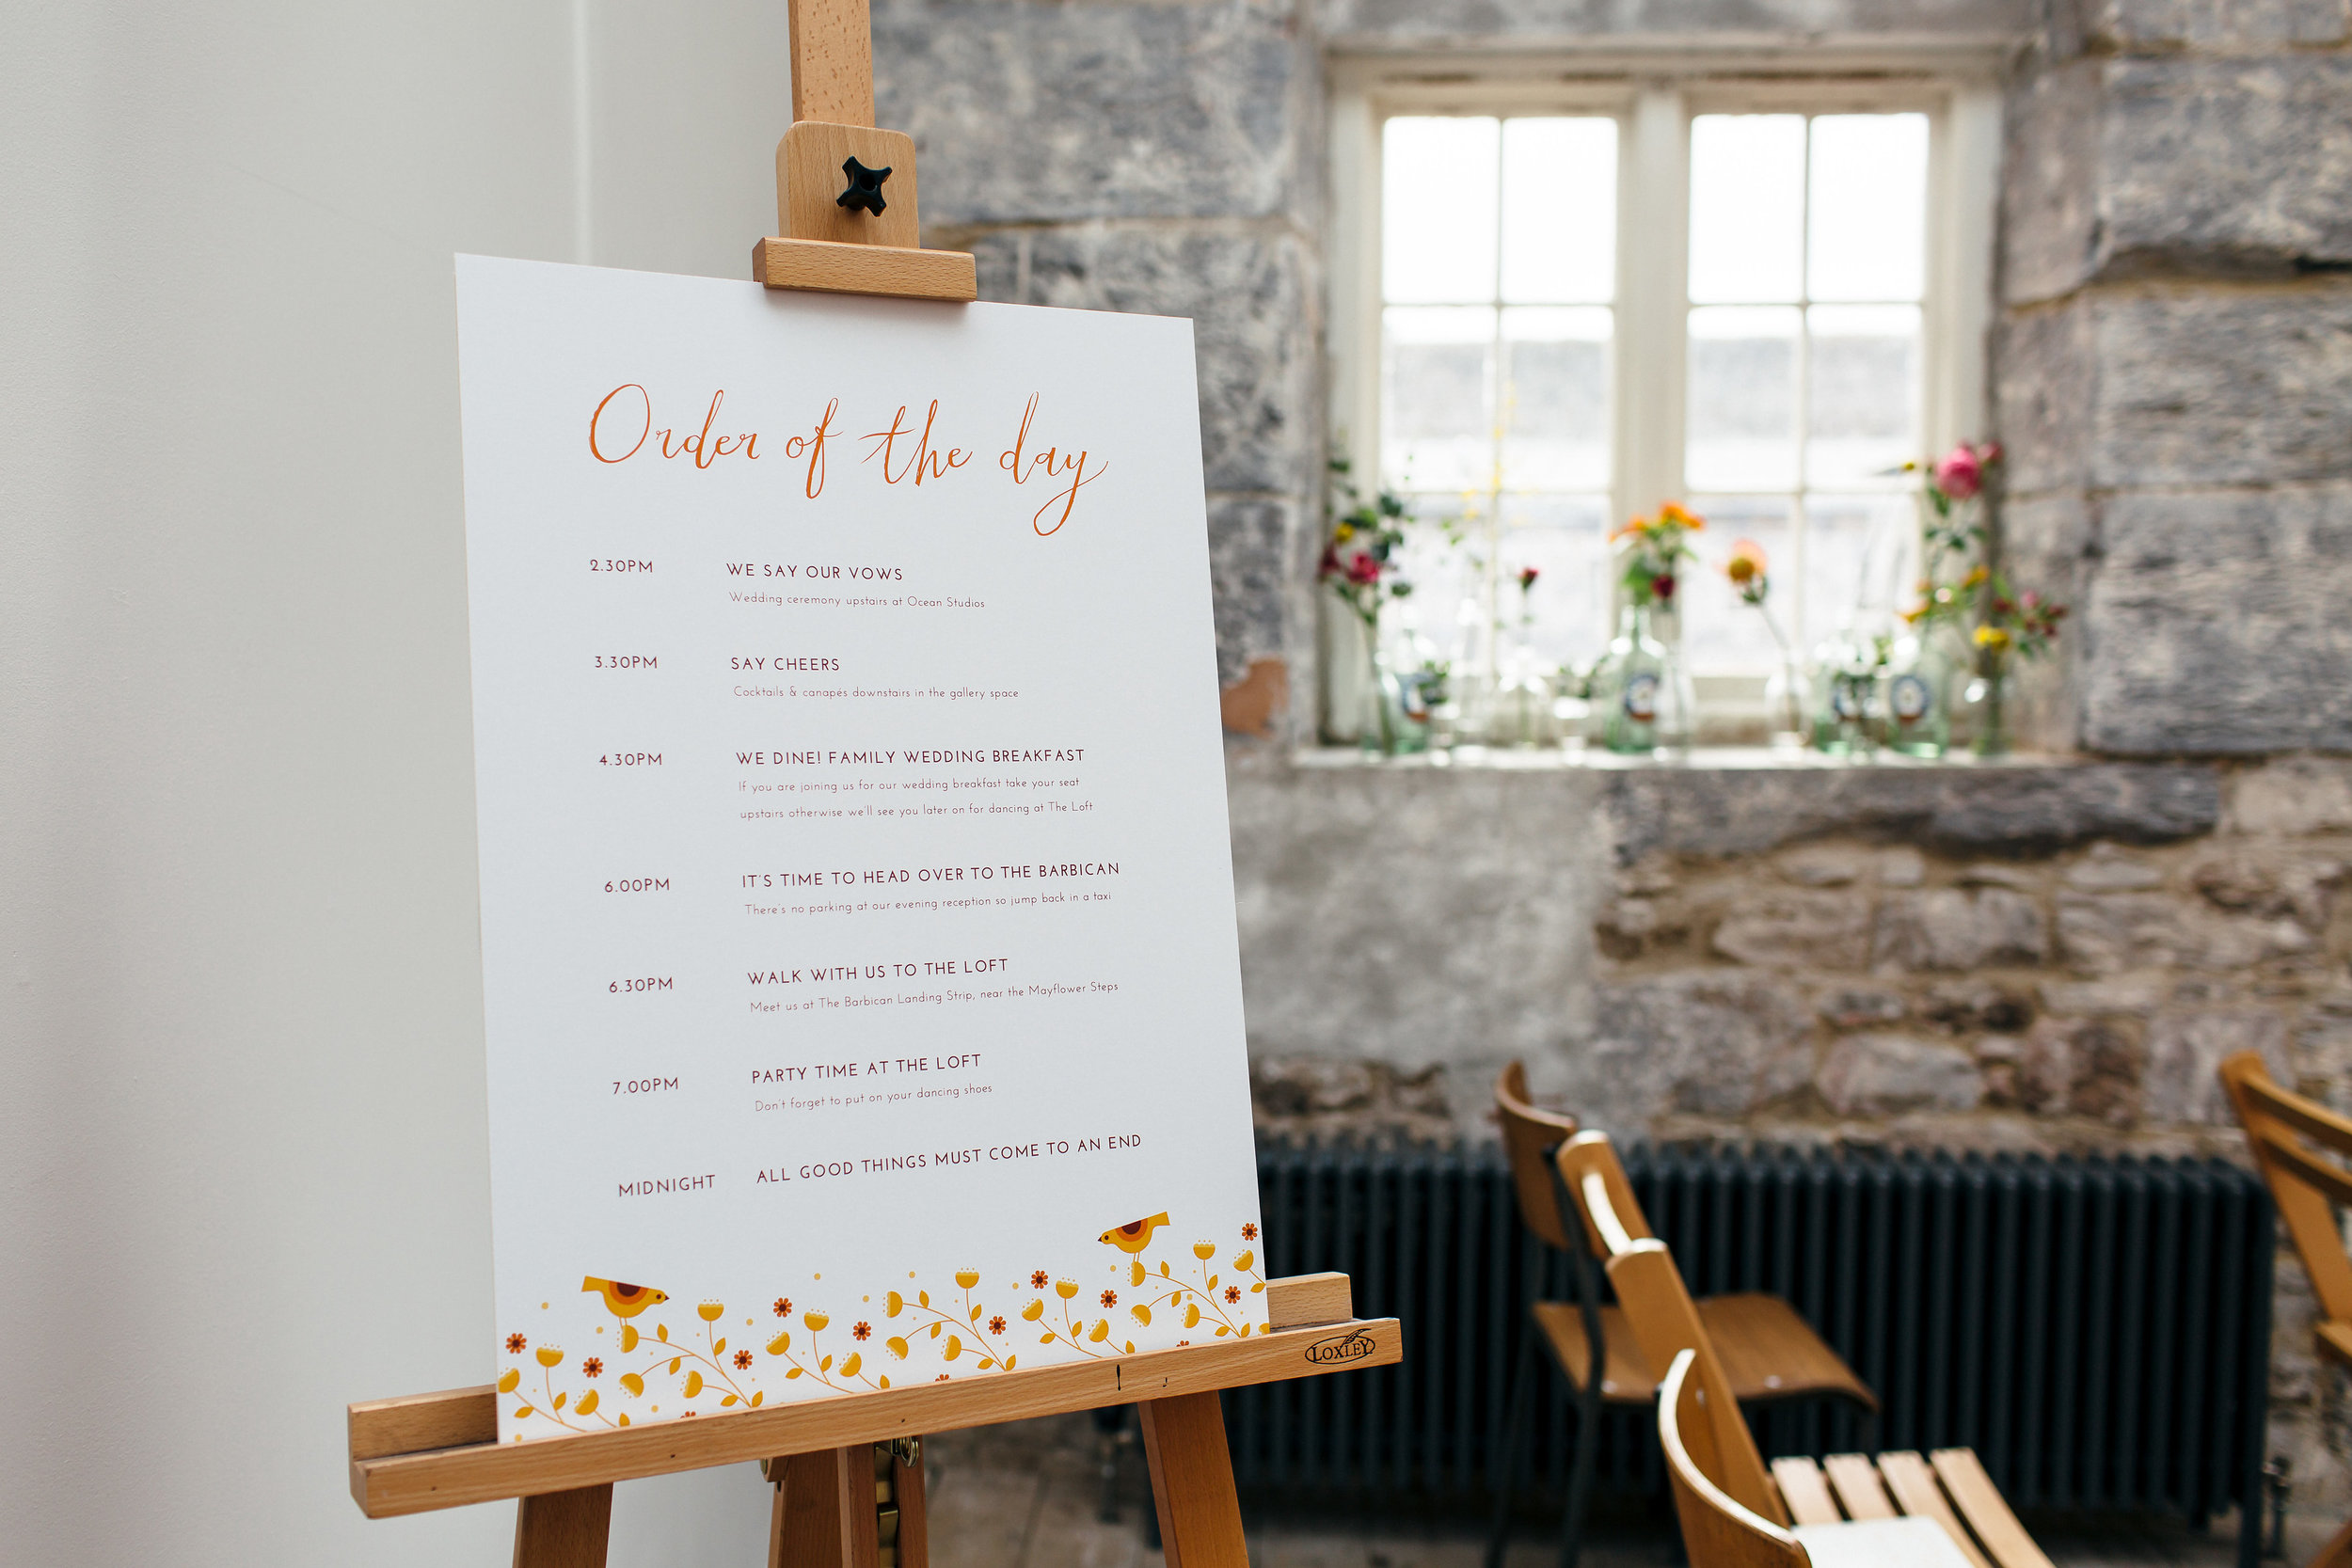 TOP TIP - Order of the Day signs are a great way to fill guests in on what's happening when so they can enjoy the day (without wondering what time dinner is served :) )